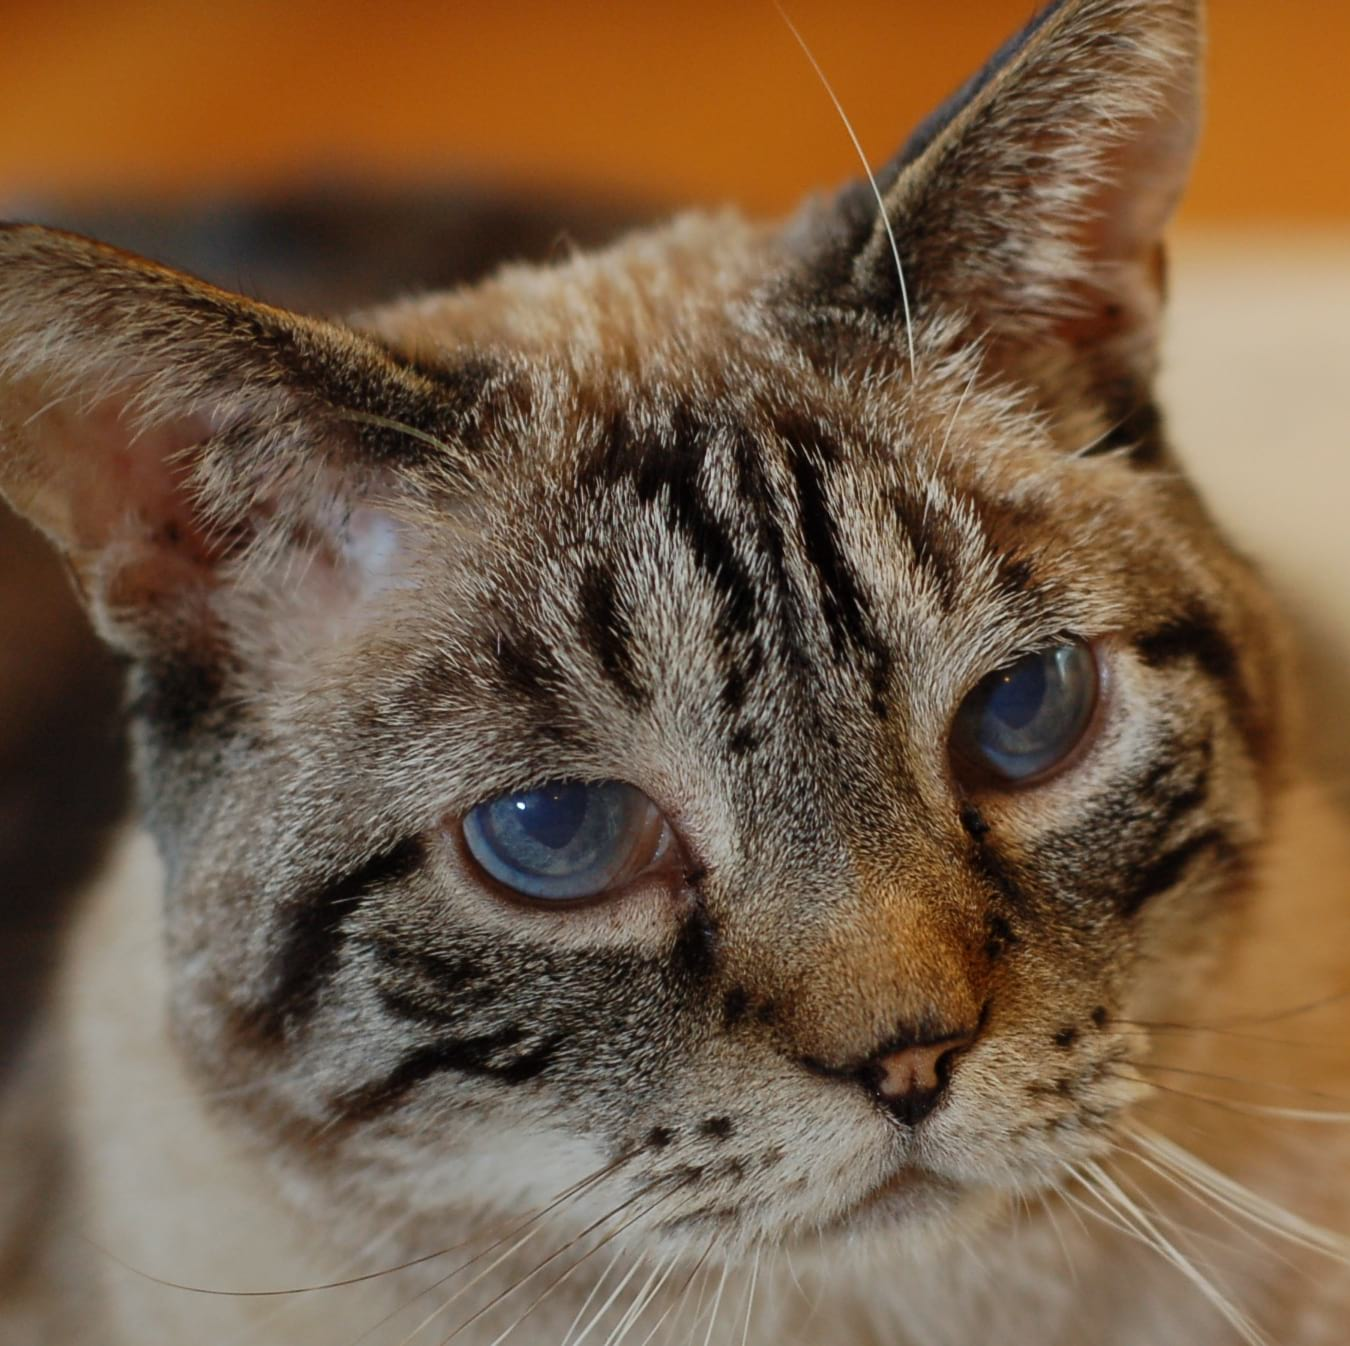 closeup of a light brown and black cat's face with blue-green eyes